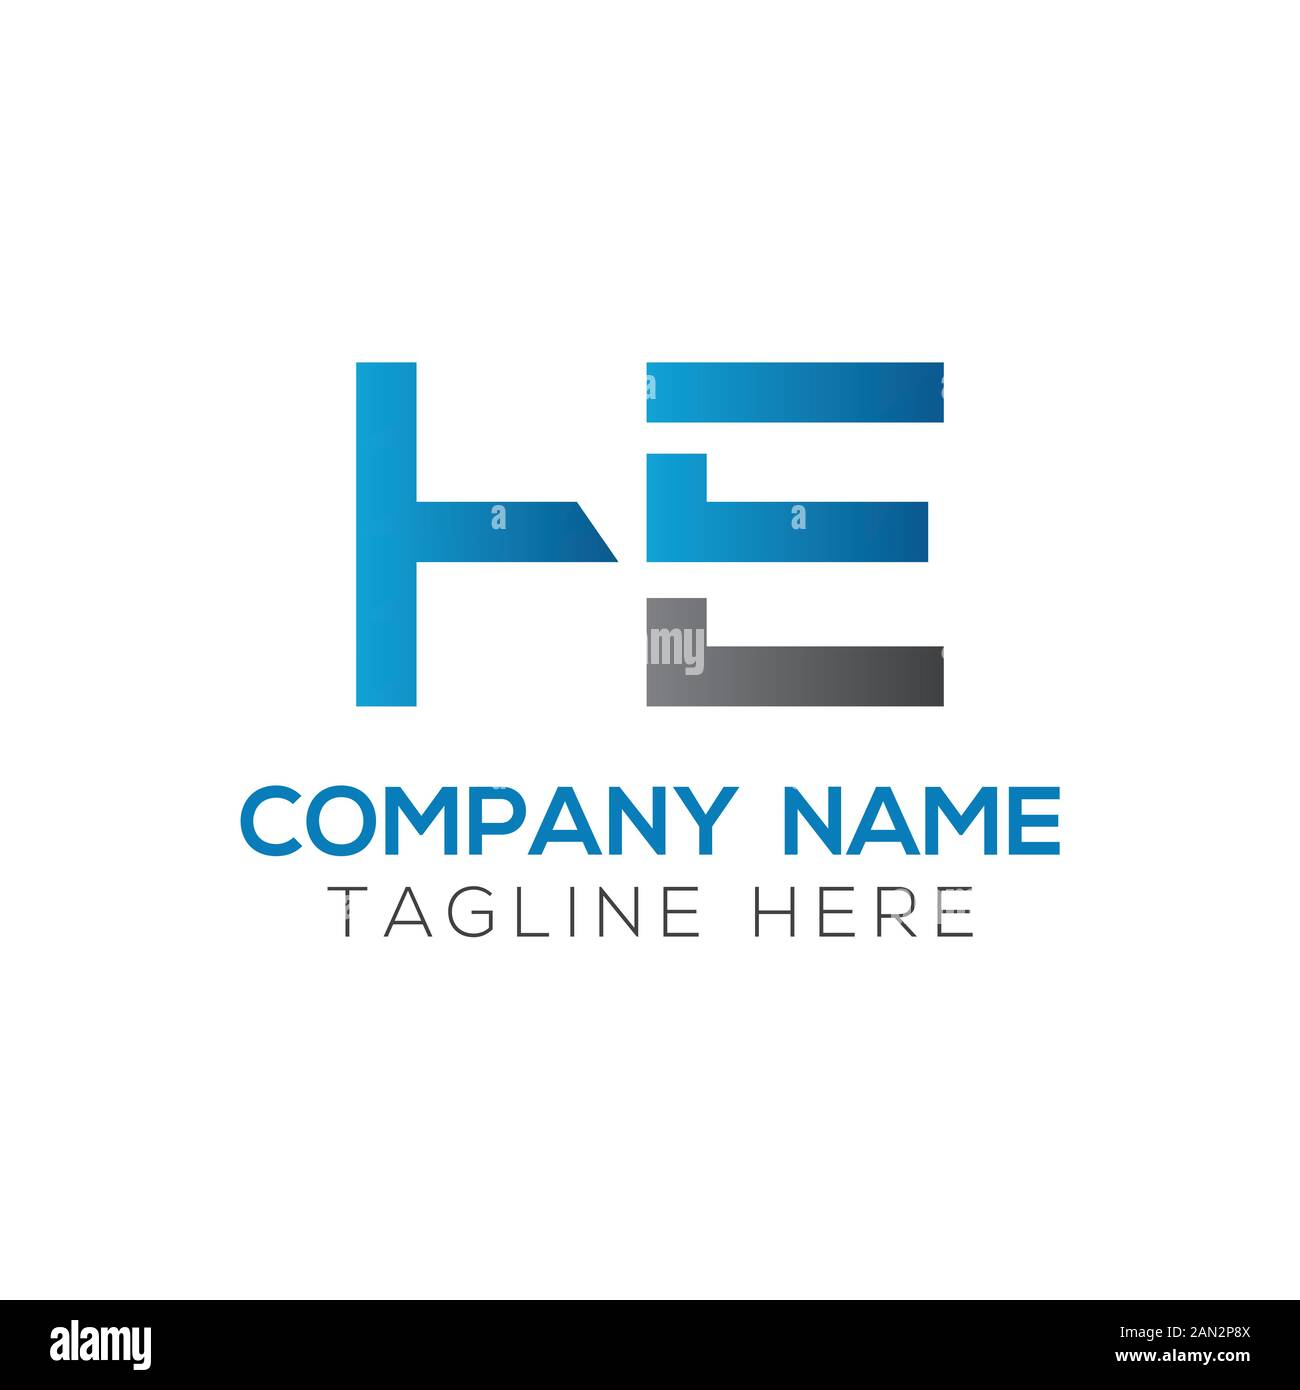 Carta He Logo Design Linked Vector Template Con Blue Y Black Ilustracion Inicial Del Vector He Imagen Vector De Stock Alamy It is a creative source for design news, inspiration, graphic resources and interviews. alamy